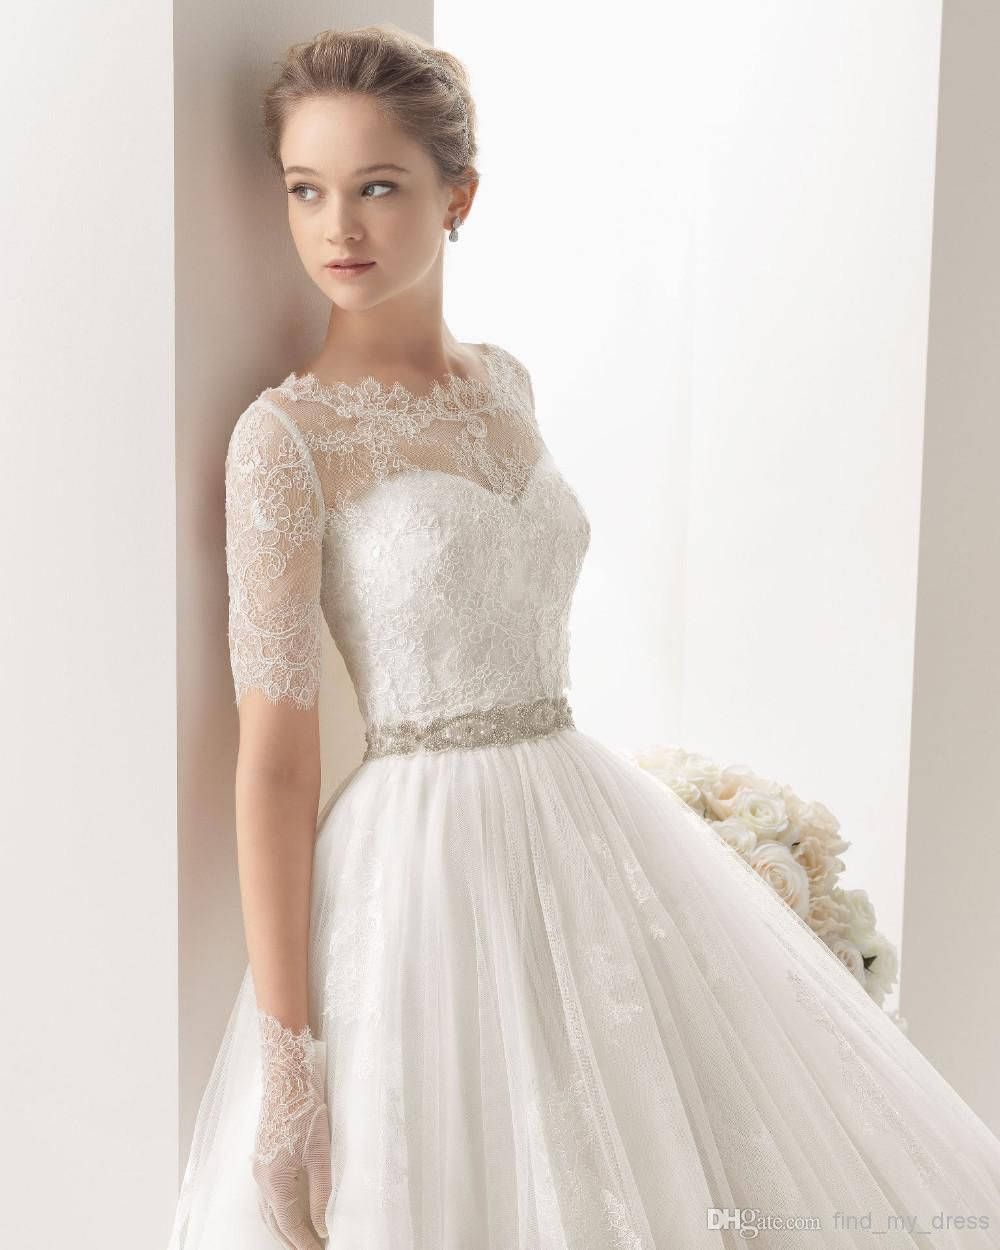 Lace Sleeves Sweetheart Neckline Bridal Gown For The Future